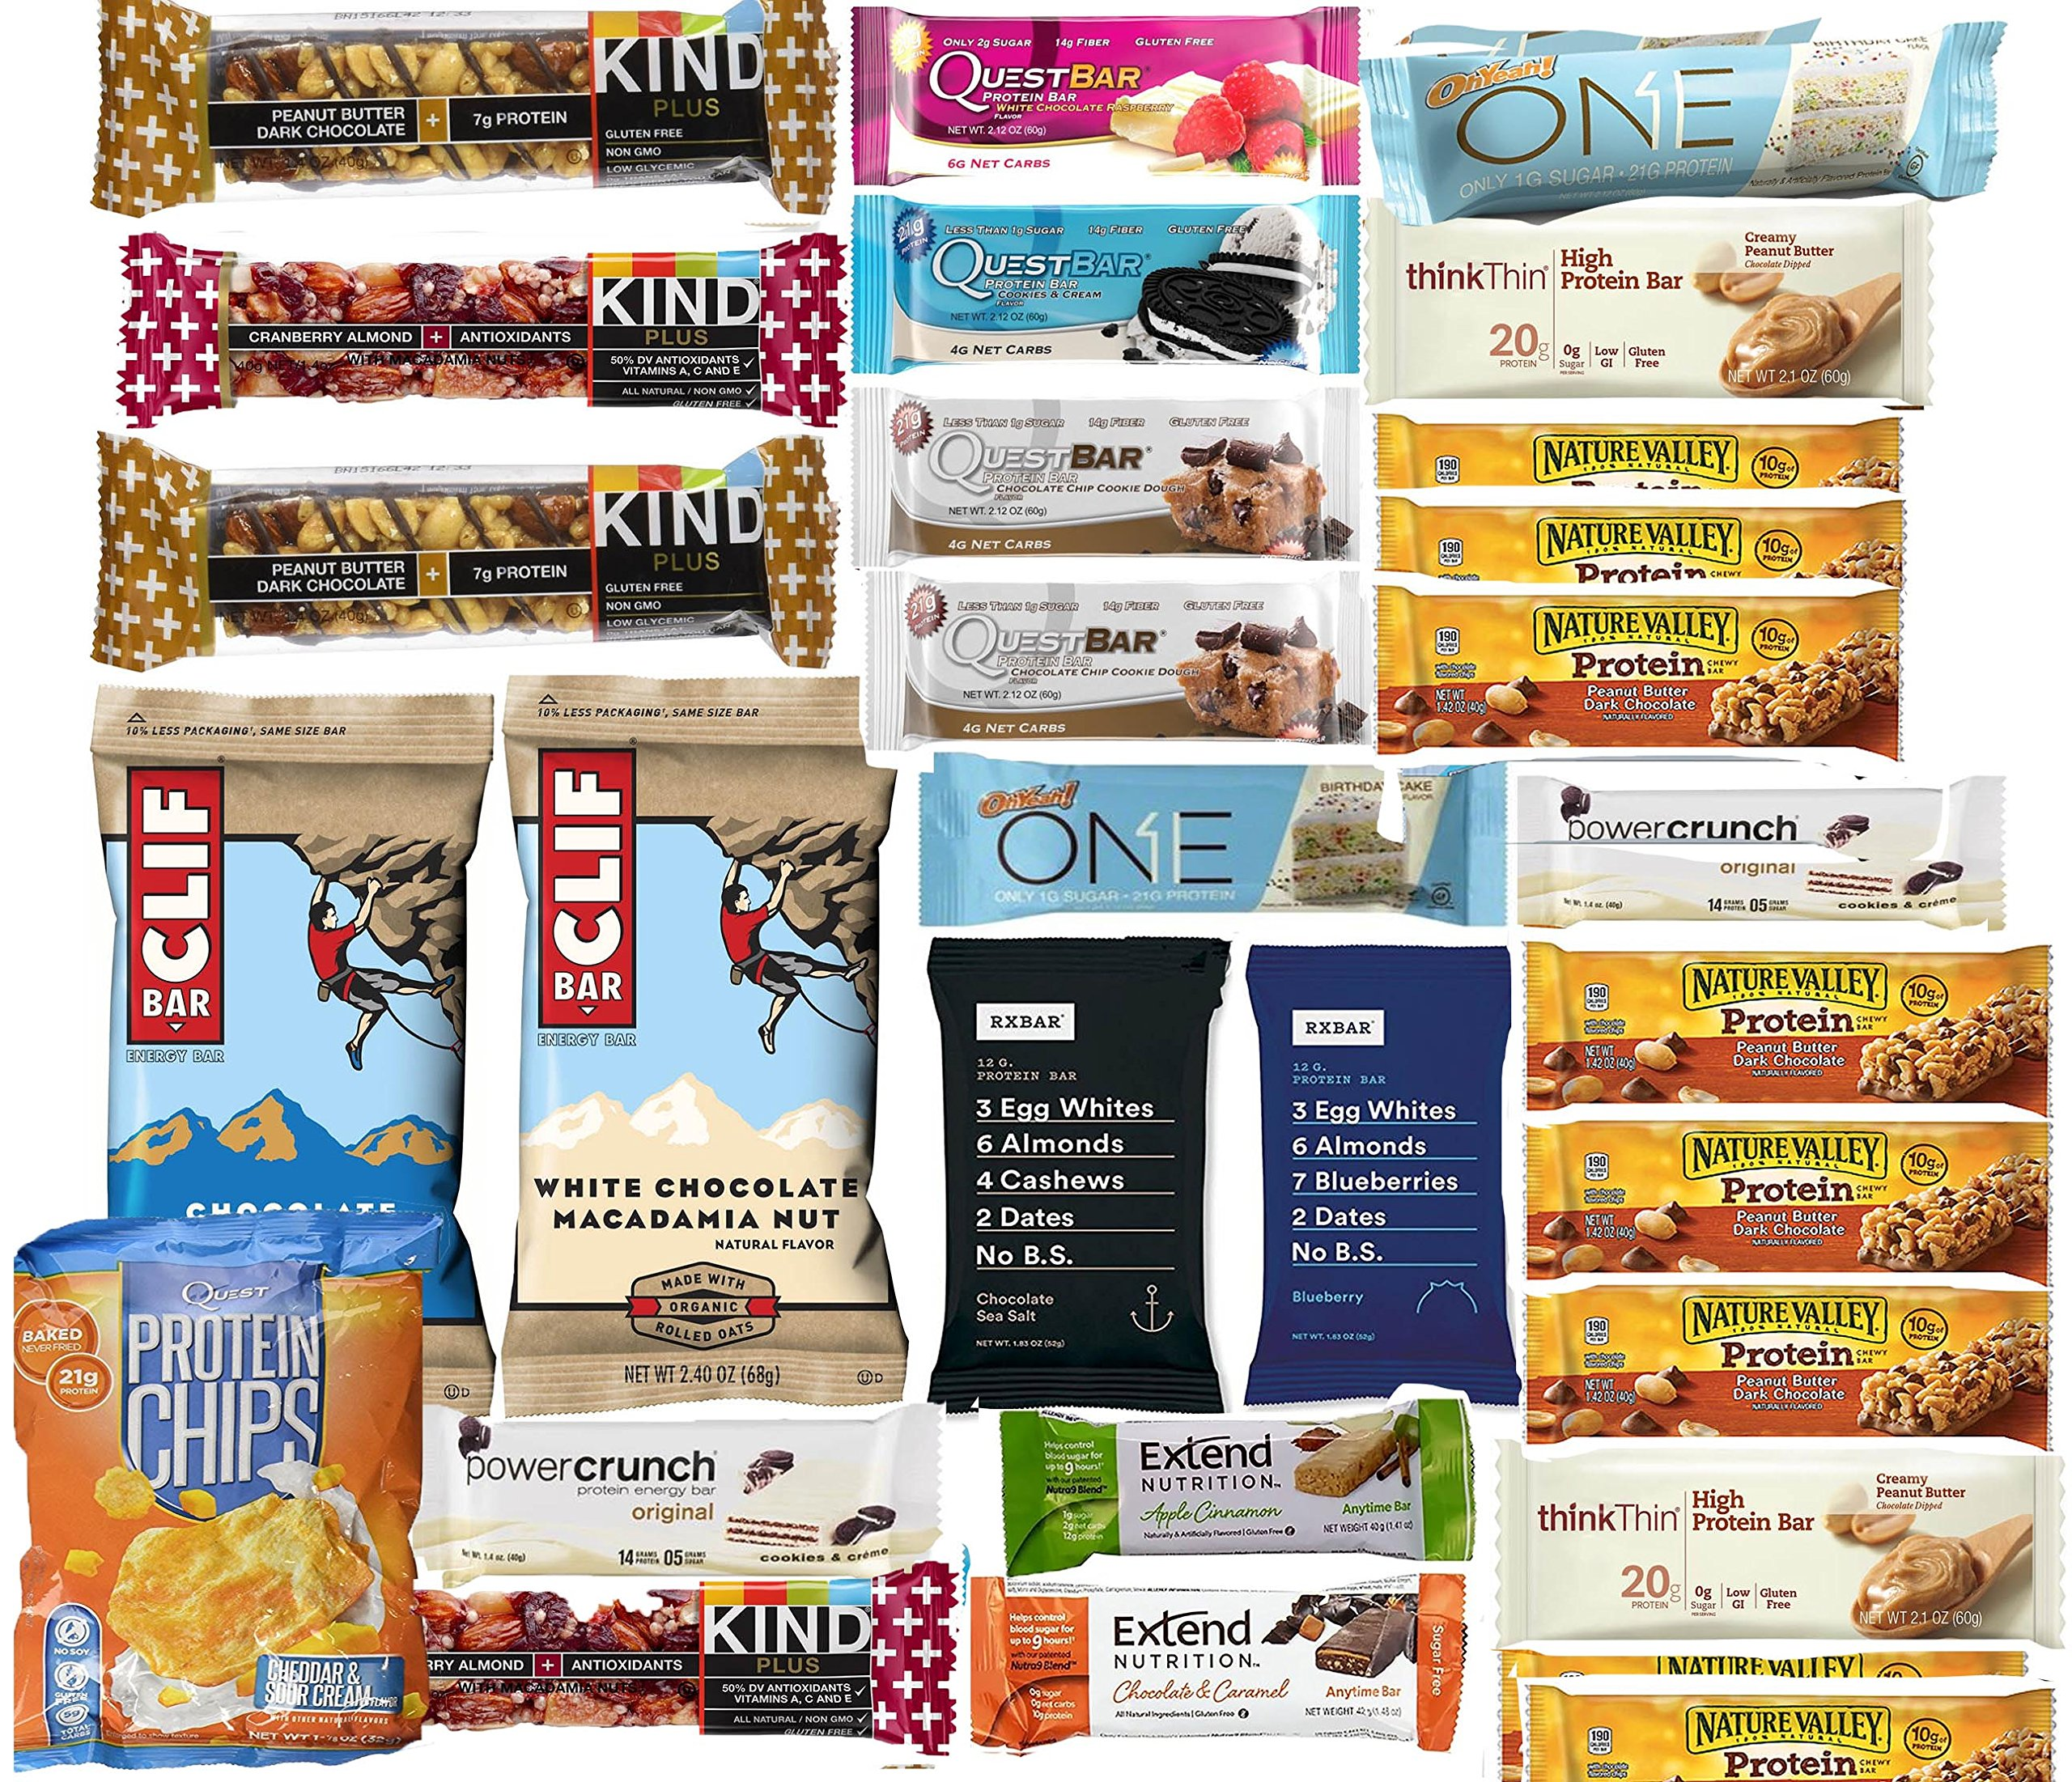 Protein Bars And Snack Sampler Pack, Includes RX bar, Quest, One Bars, Clif , Quest Chips, Think Thin, Kind Bars, Nature Valley, Power Crunch, Pack of 30 Bars, High in Protein and Healthy Snack